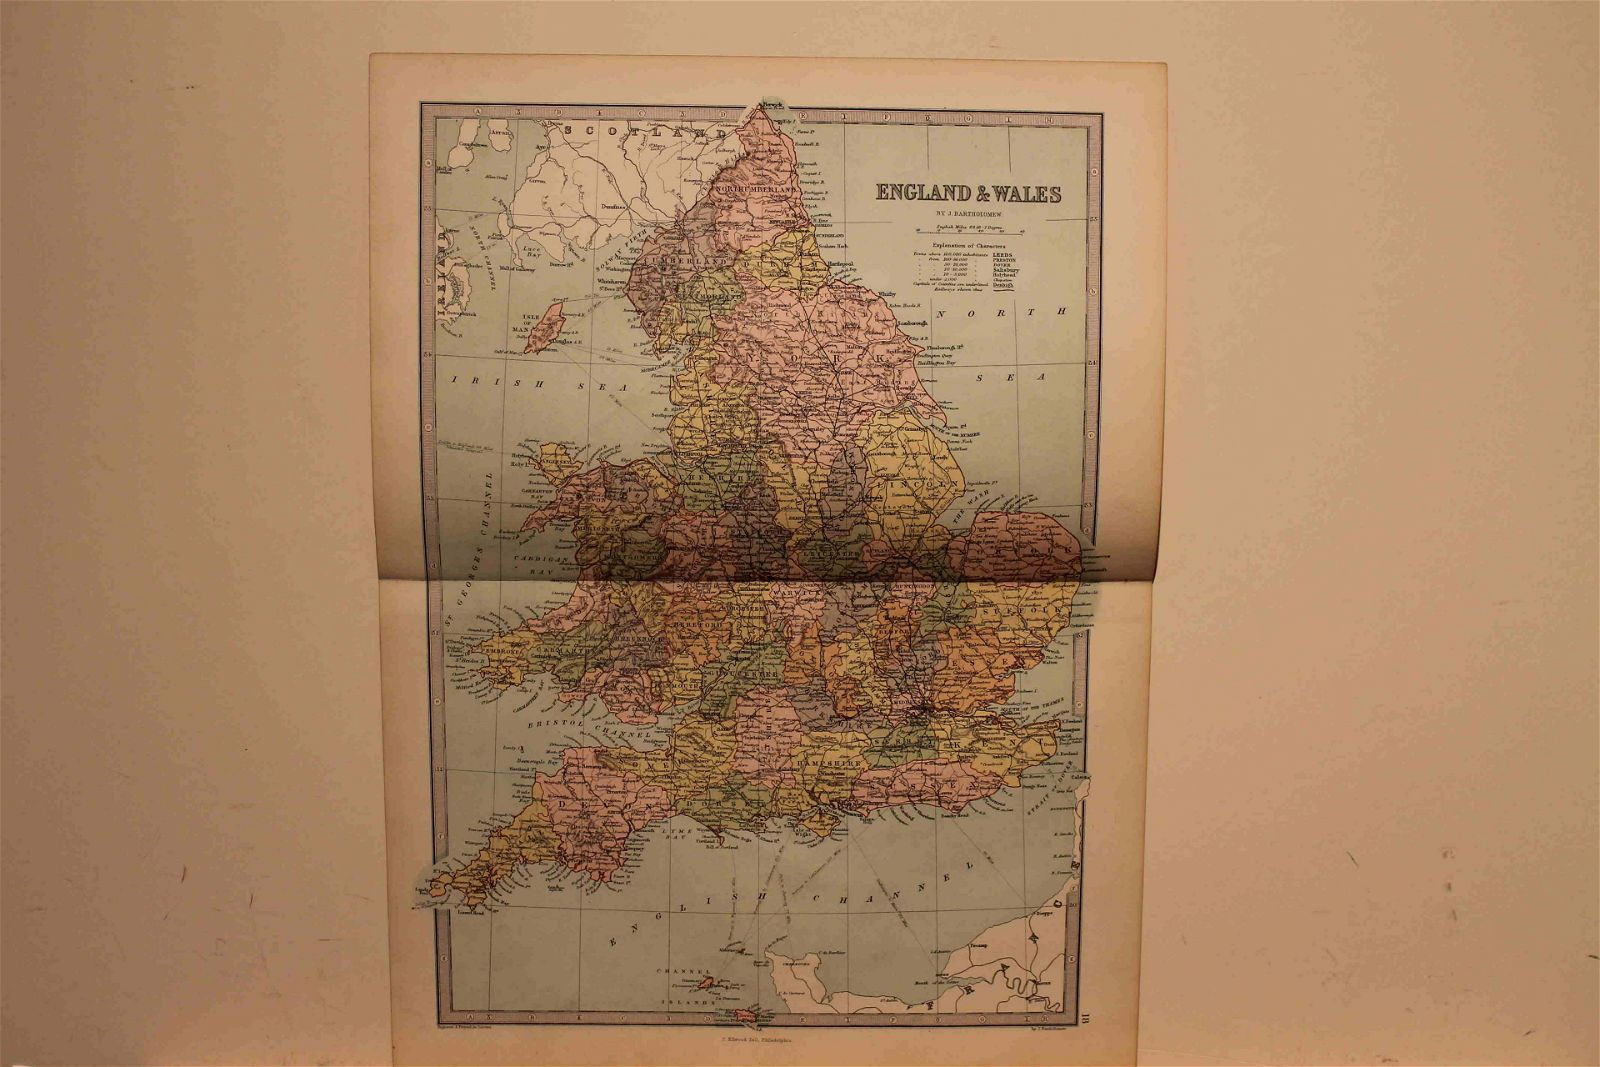 1873 Map of England and Wales